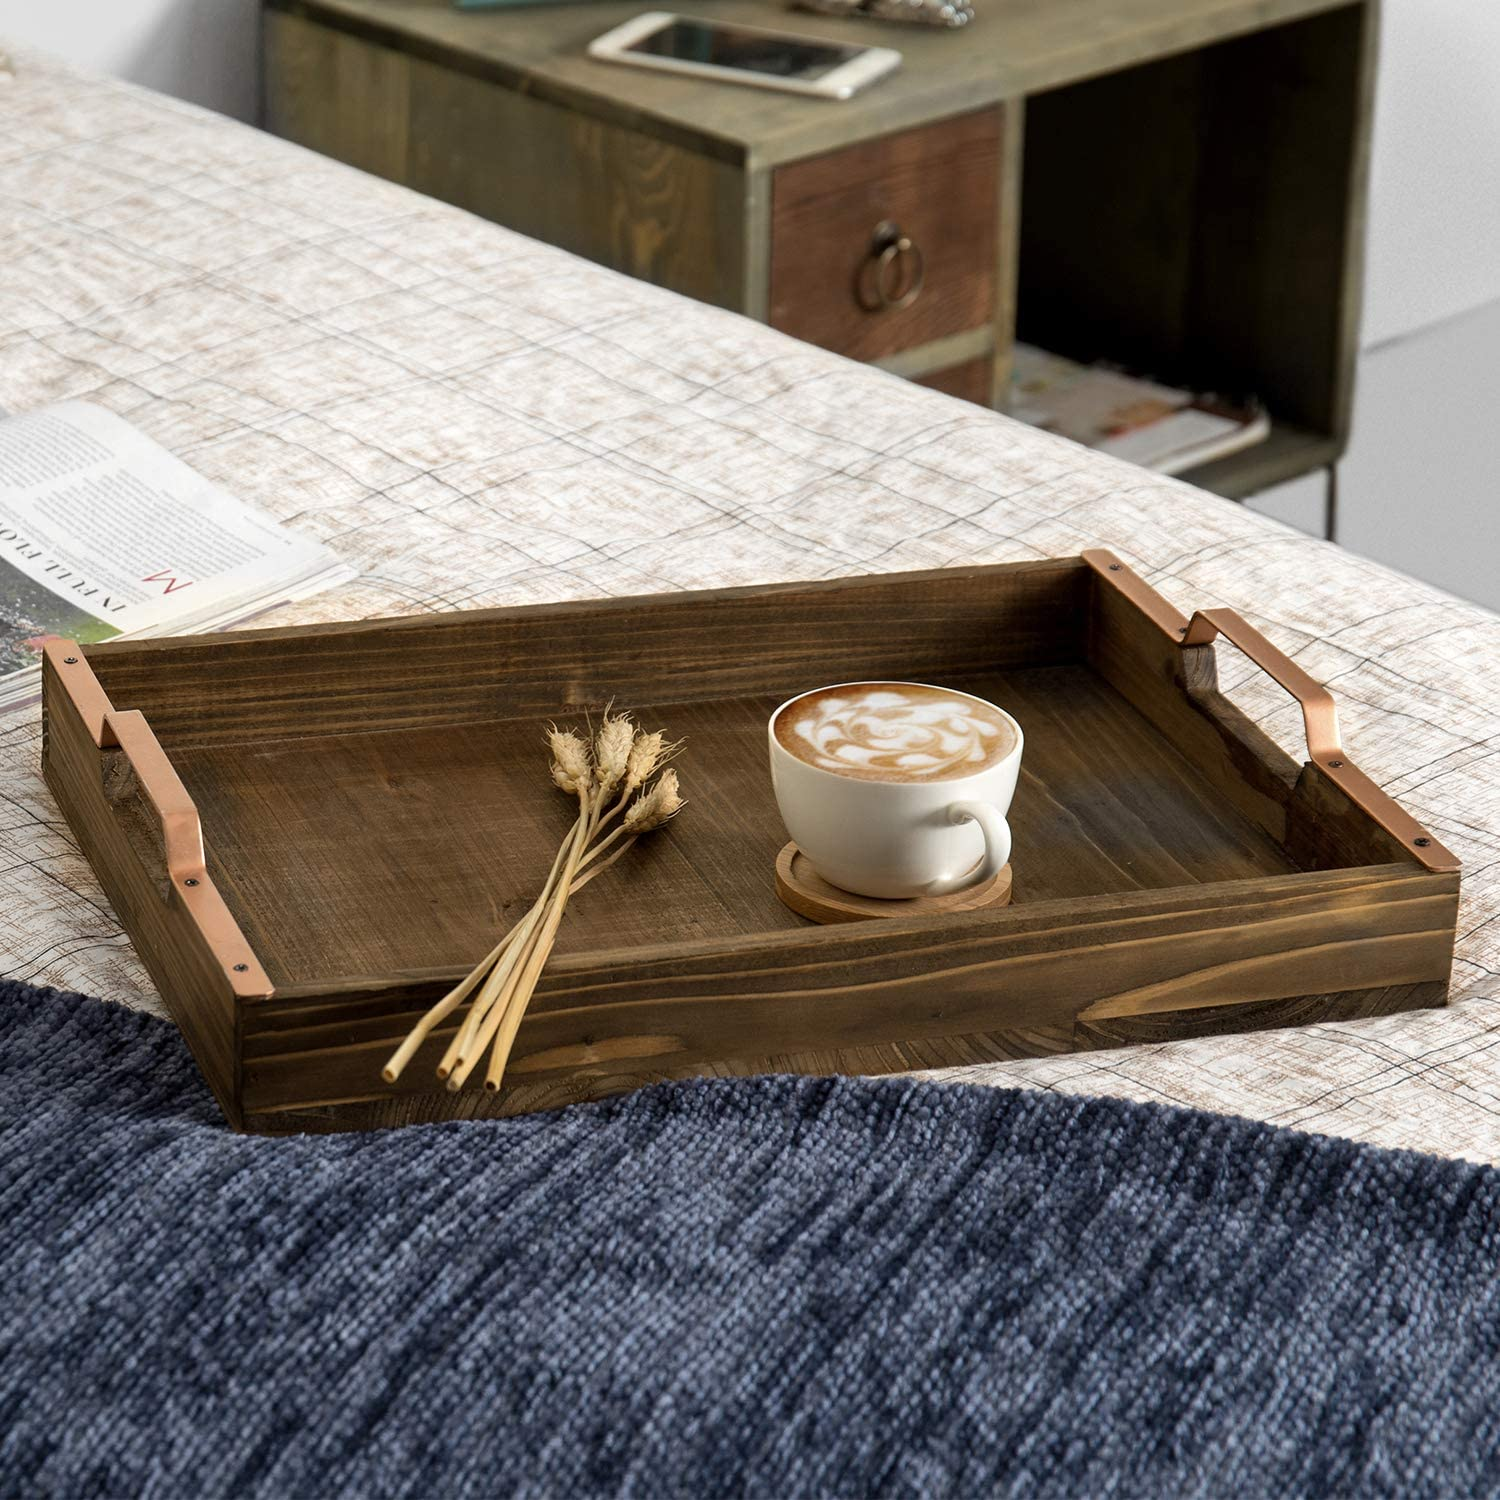 MyGift Rustic Burnt Wood 16-inch Breakfast Serving Tray with Copper-Tone Metal Handles